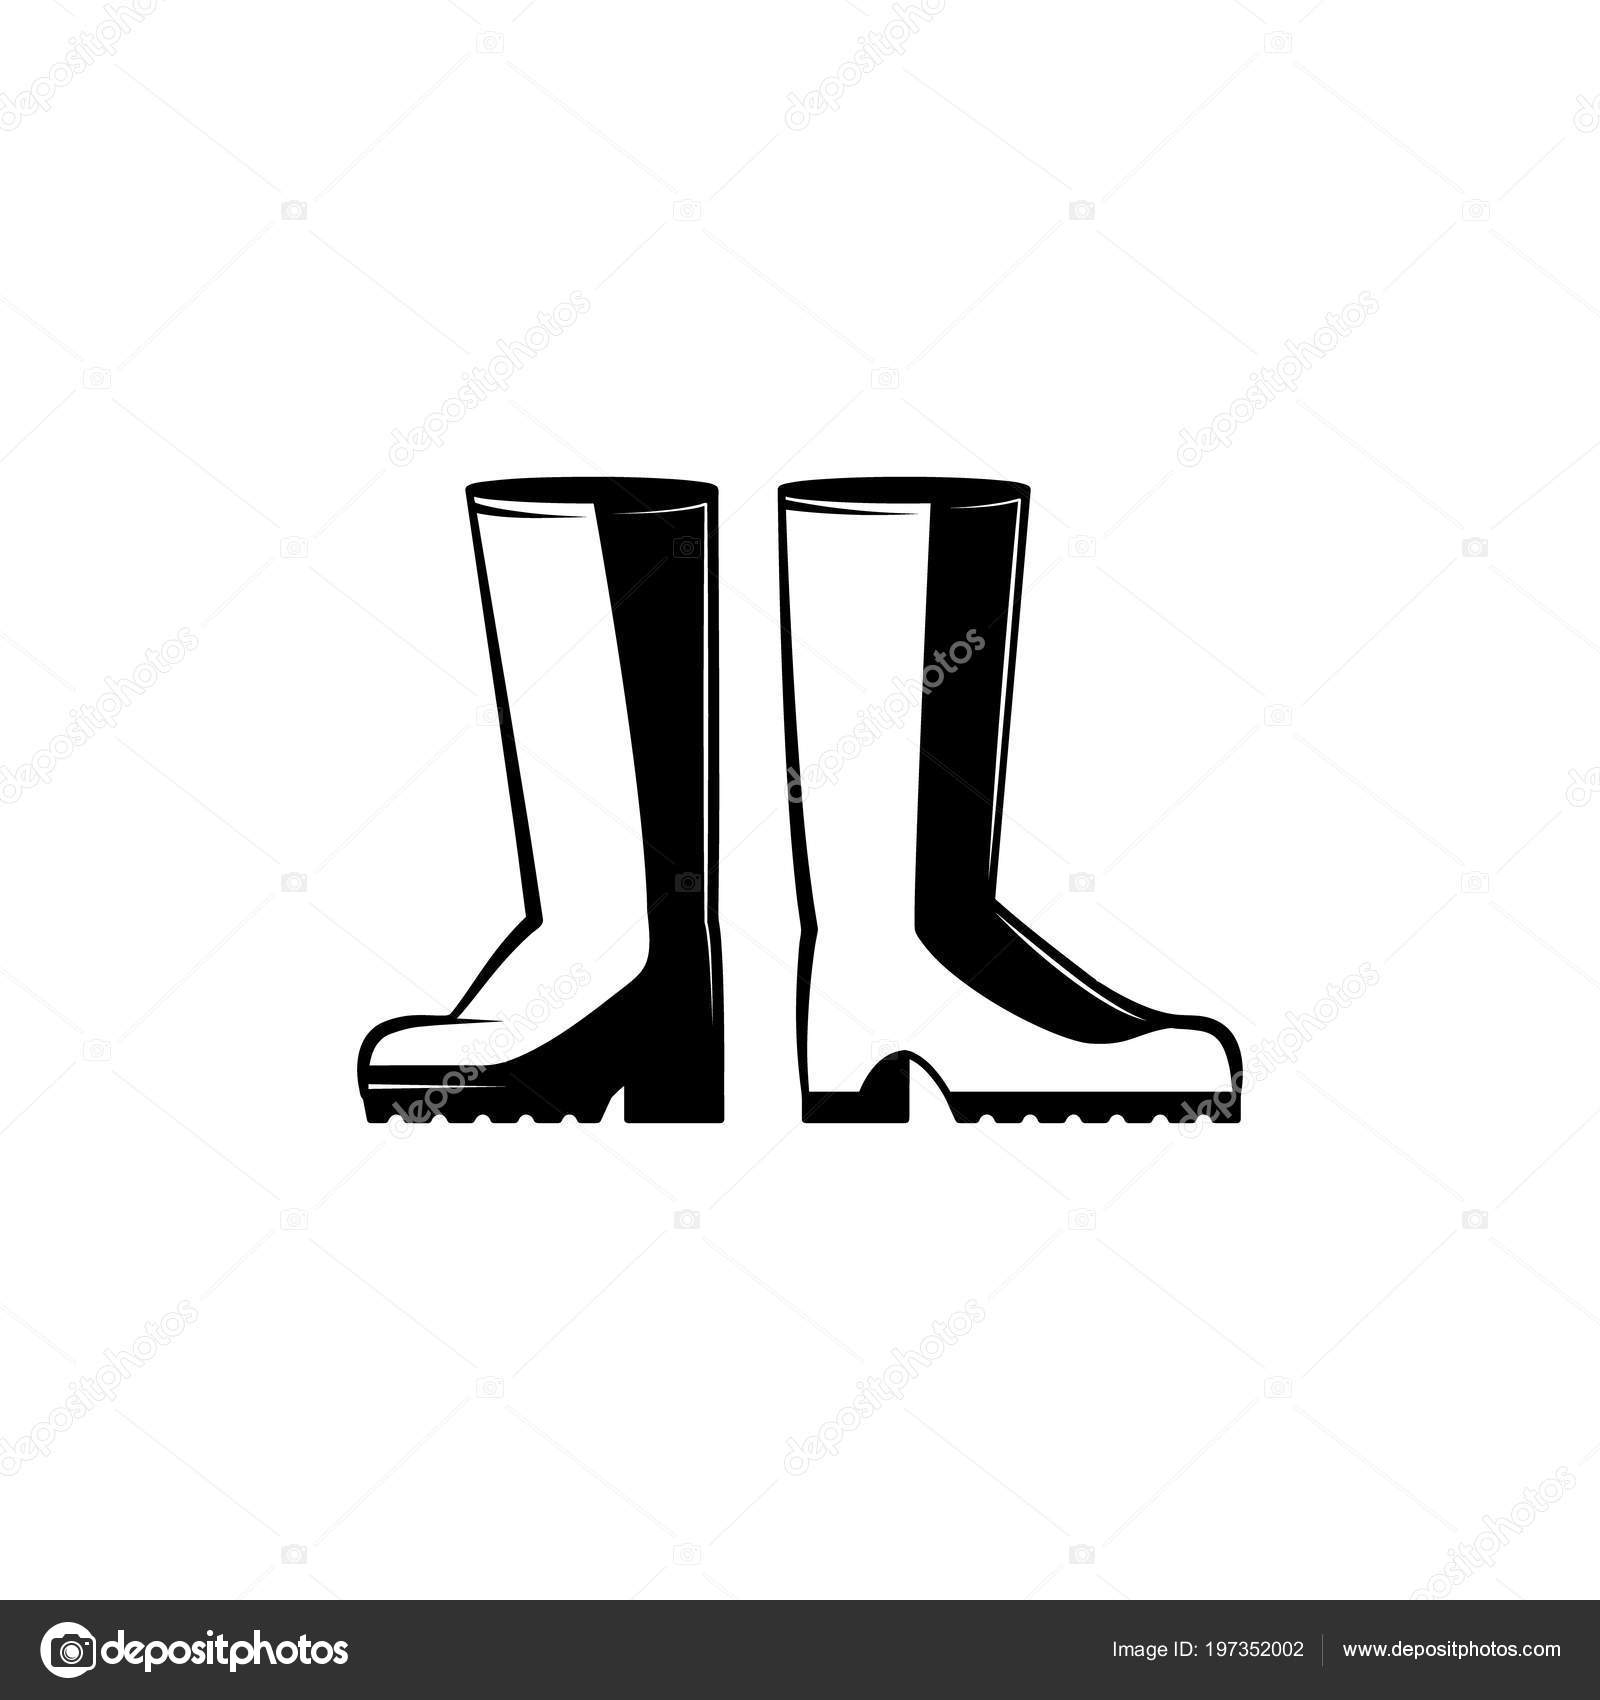 a0c023c60d6 Pair of rubber boots monochrome silhouette - protective farm shoes ...